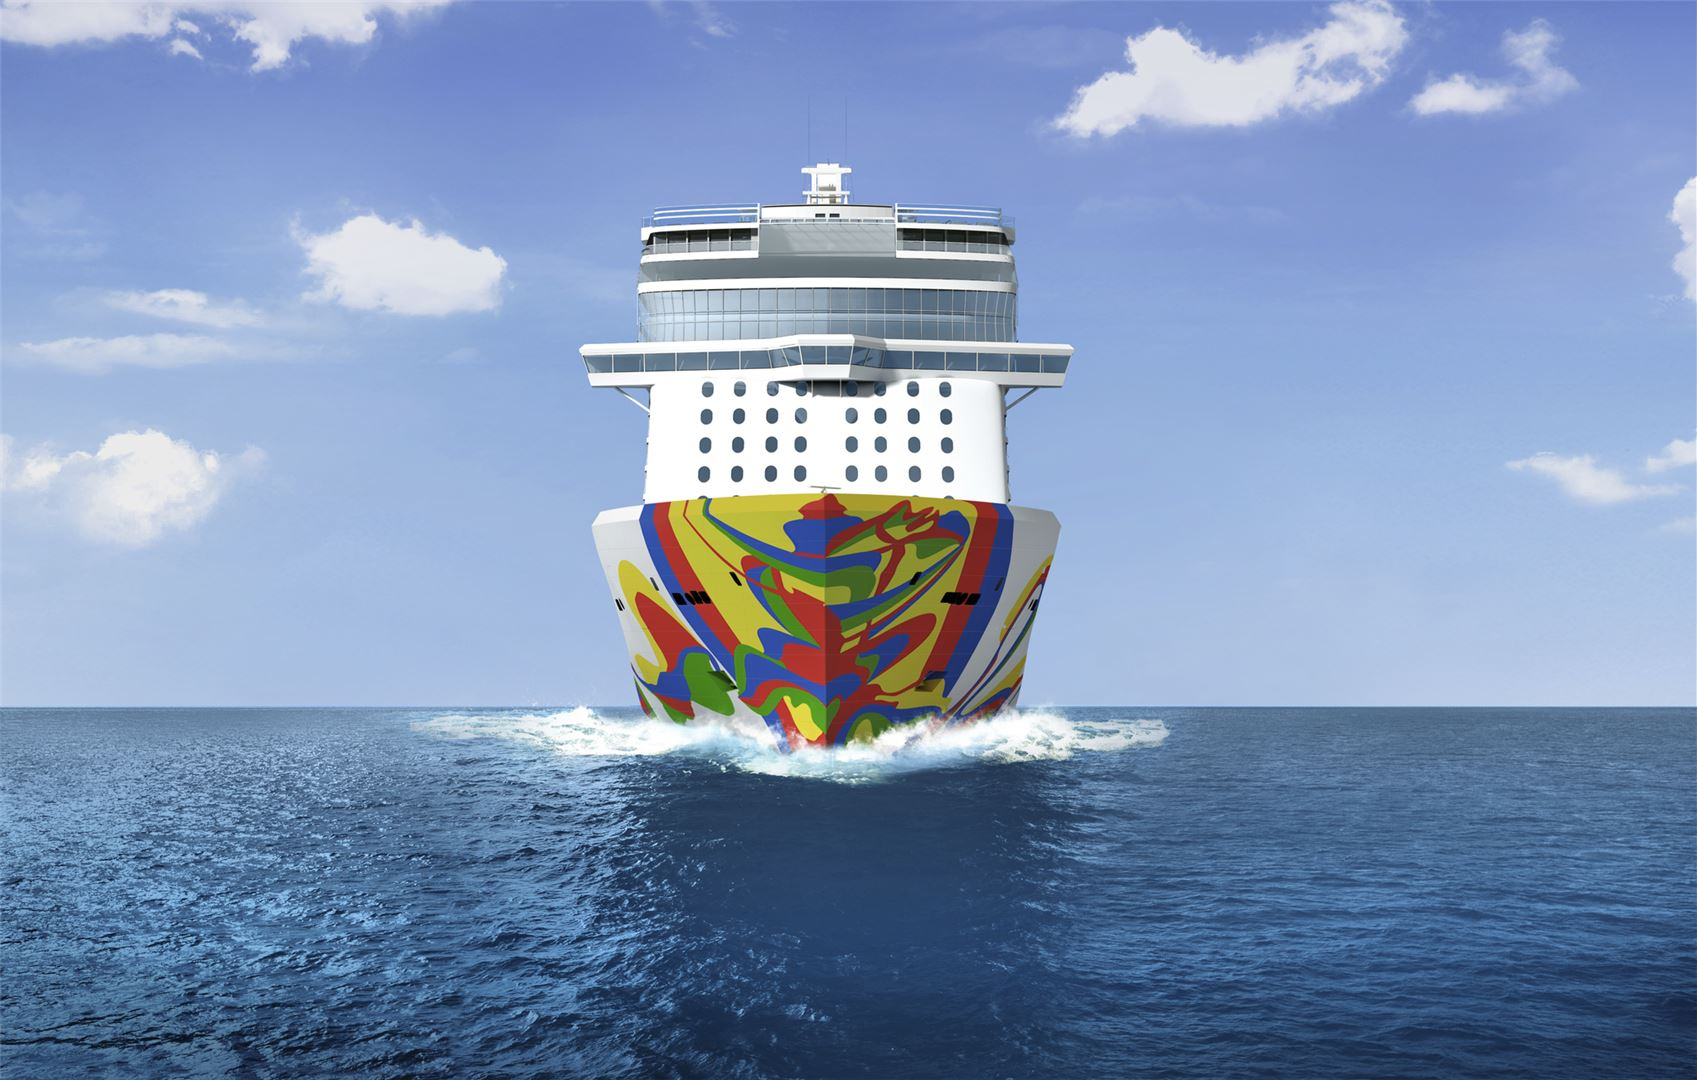 Norwegian Encore Hull Artwork.